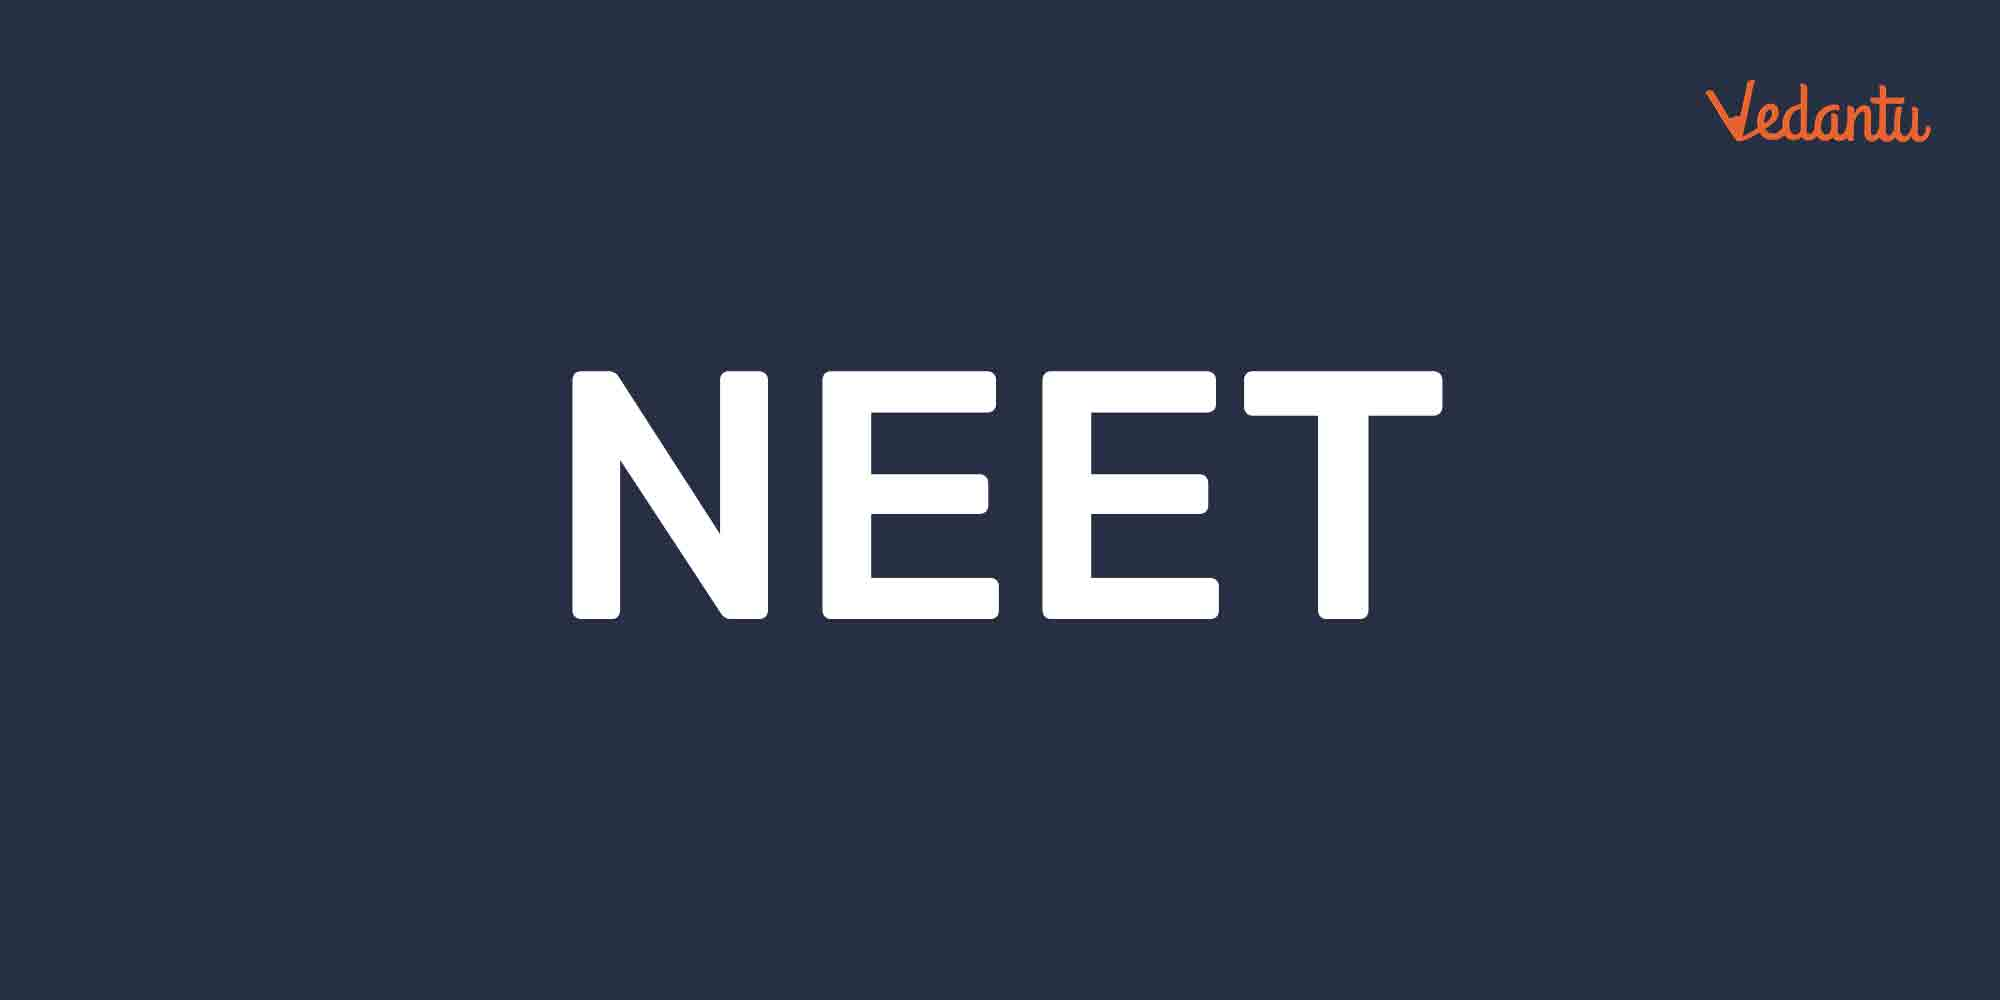 What is the Daily Timetable of NEET Aspirants?